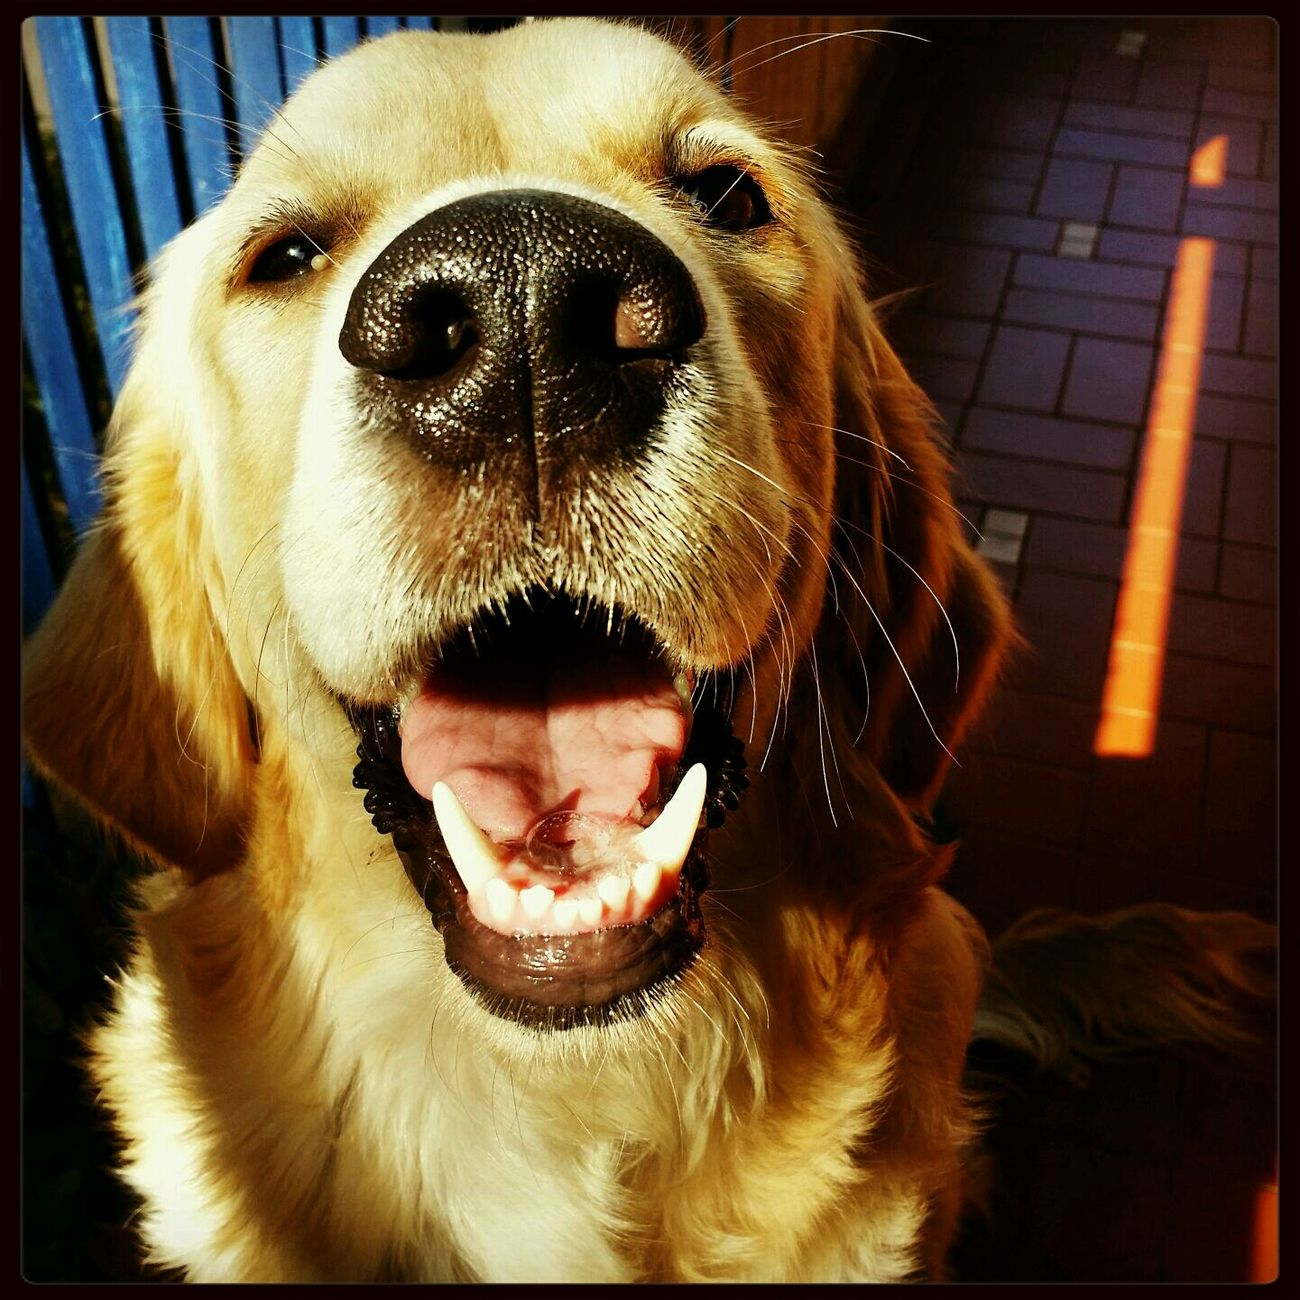 Argo Dog Goldenretriever Ilovegoldenretrievers Mydog First Eyeem Photo